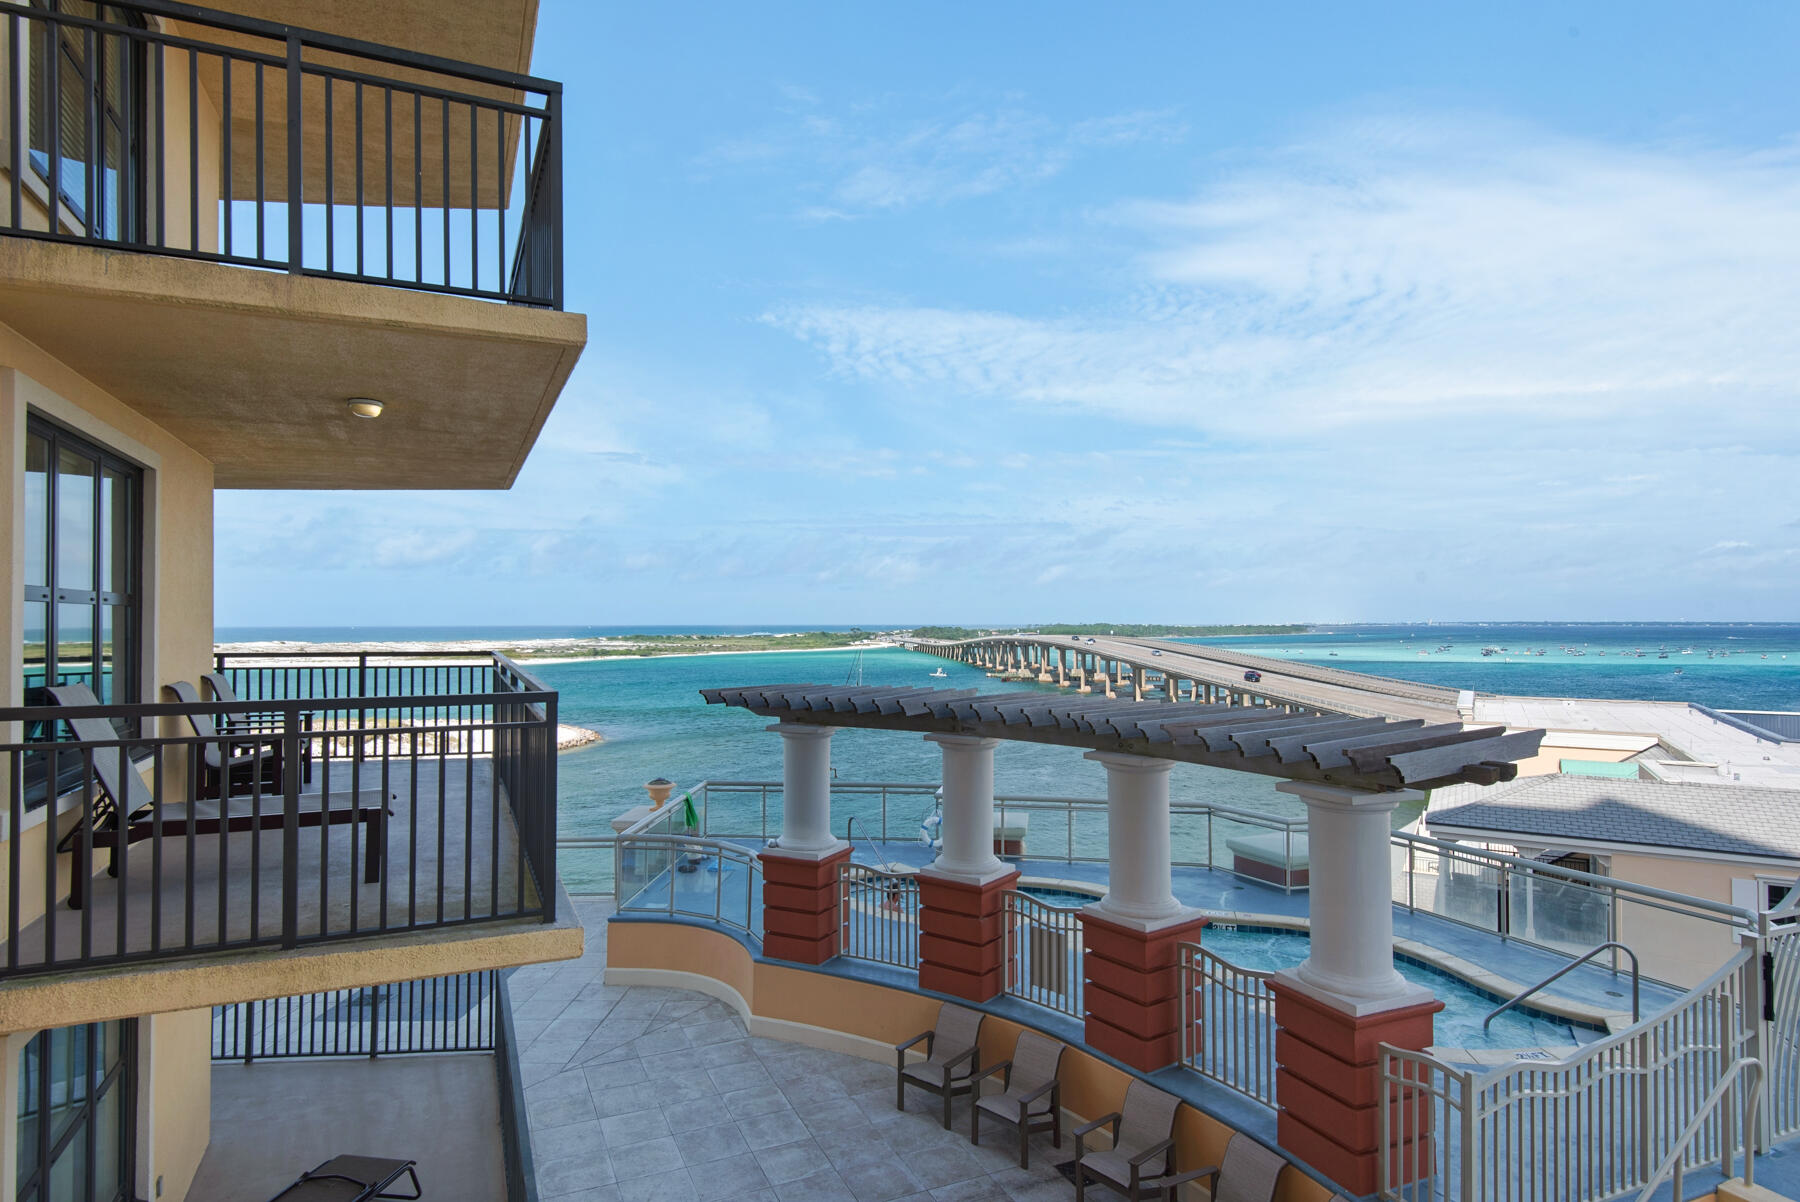 Spectacular water views from this luxury condo seven stories up for the perfect setting on Destin Harbor.  Panoramic views of East Pass, Gulf of Mexico, Choctawhatchee Bay, Destin Bridge and Crab Island. This elegant four bedroom corner unit lives like a home with polished style. With eyes toward the water, it is a haven of sumptuousness. Crown molding, recessed lighting, 9' ceilings.  The big wrap balcony offers privacy from south units. The Sundeck pool is one level down.   Located on same floor as European spa, treat yourself.  Steps away from your unit are Destin Harbor, marina, charter fishing, waterfront dining at numerous restaurants, shopping at HarborWalk Village, famous McQuires, beach shuttle, more. Rental income on books and projected to be $90,000- $100,000.